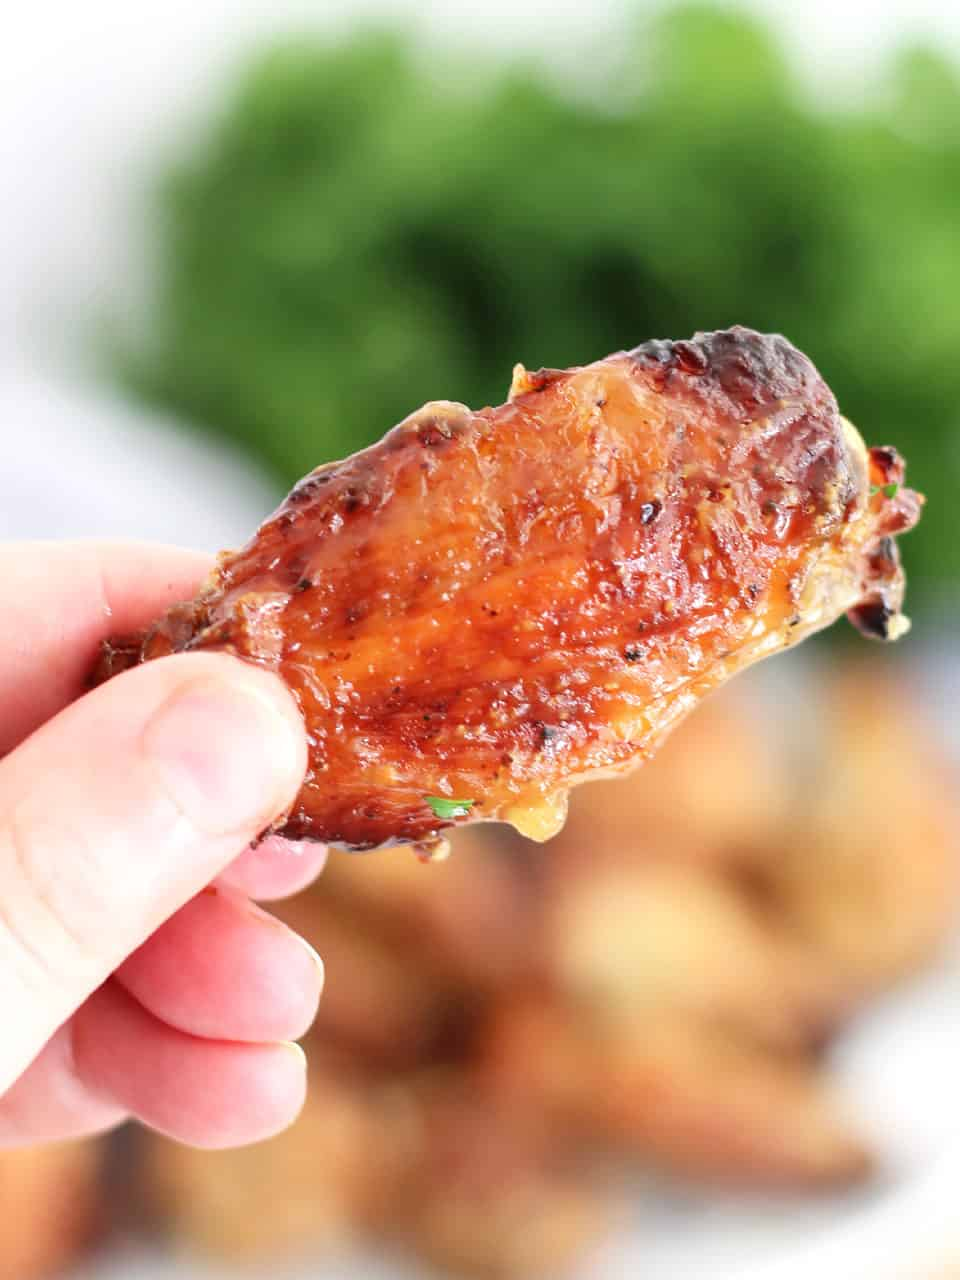 A hand holding a baked chicken wing.